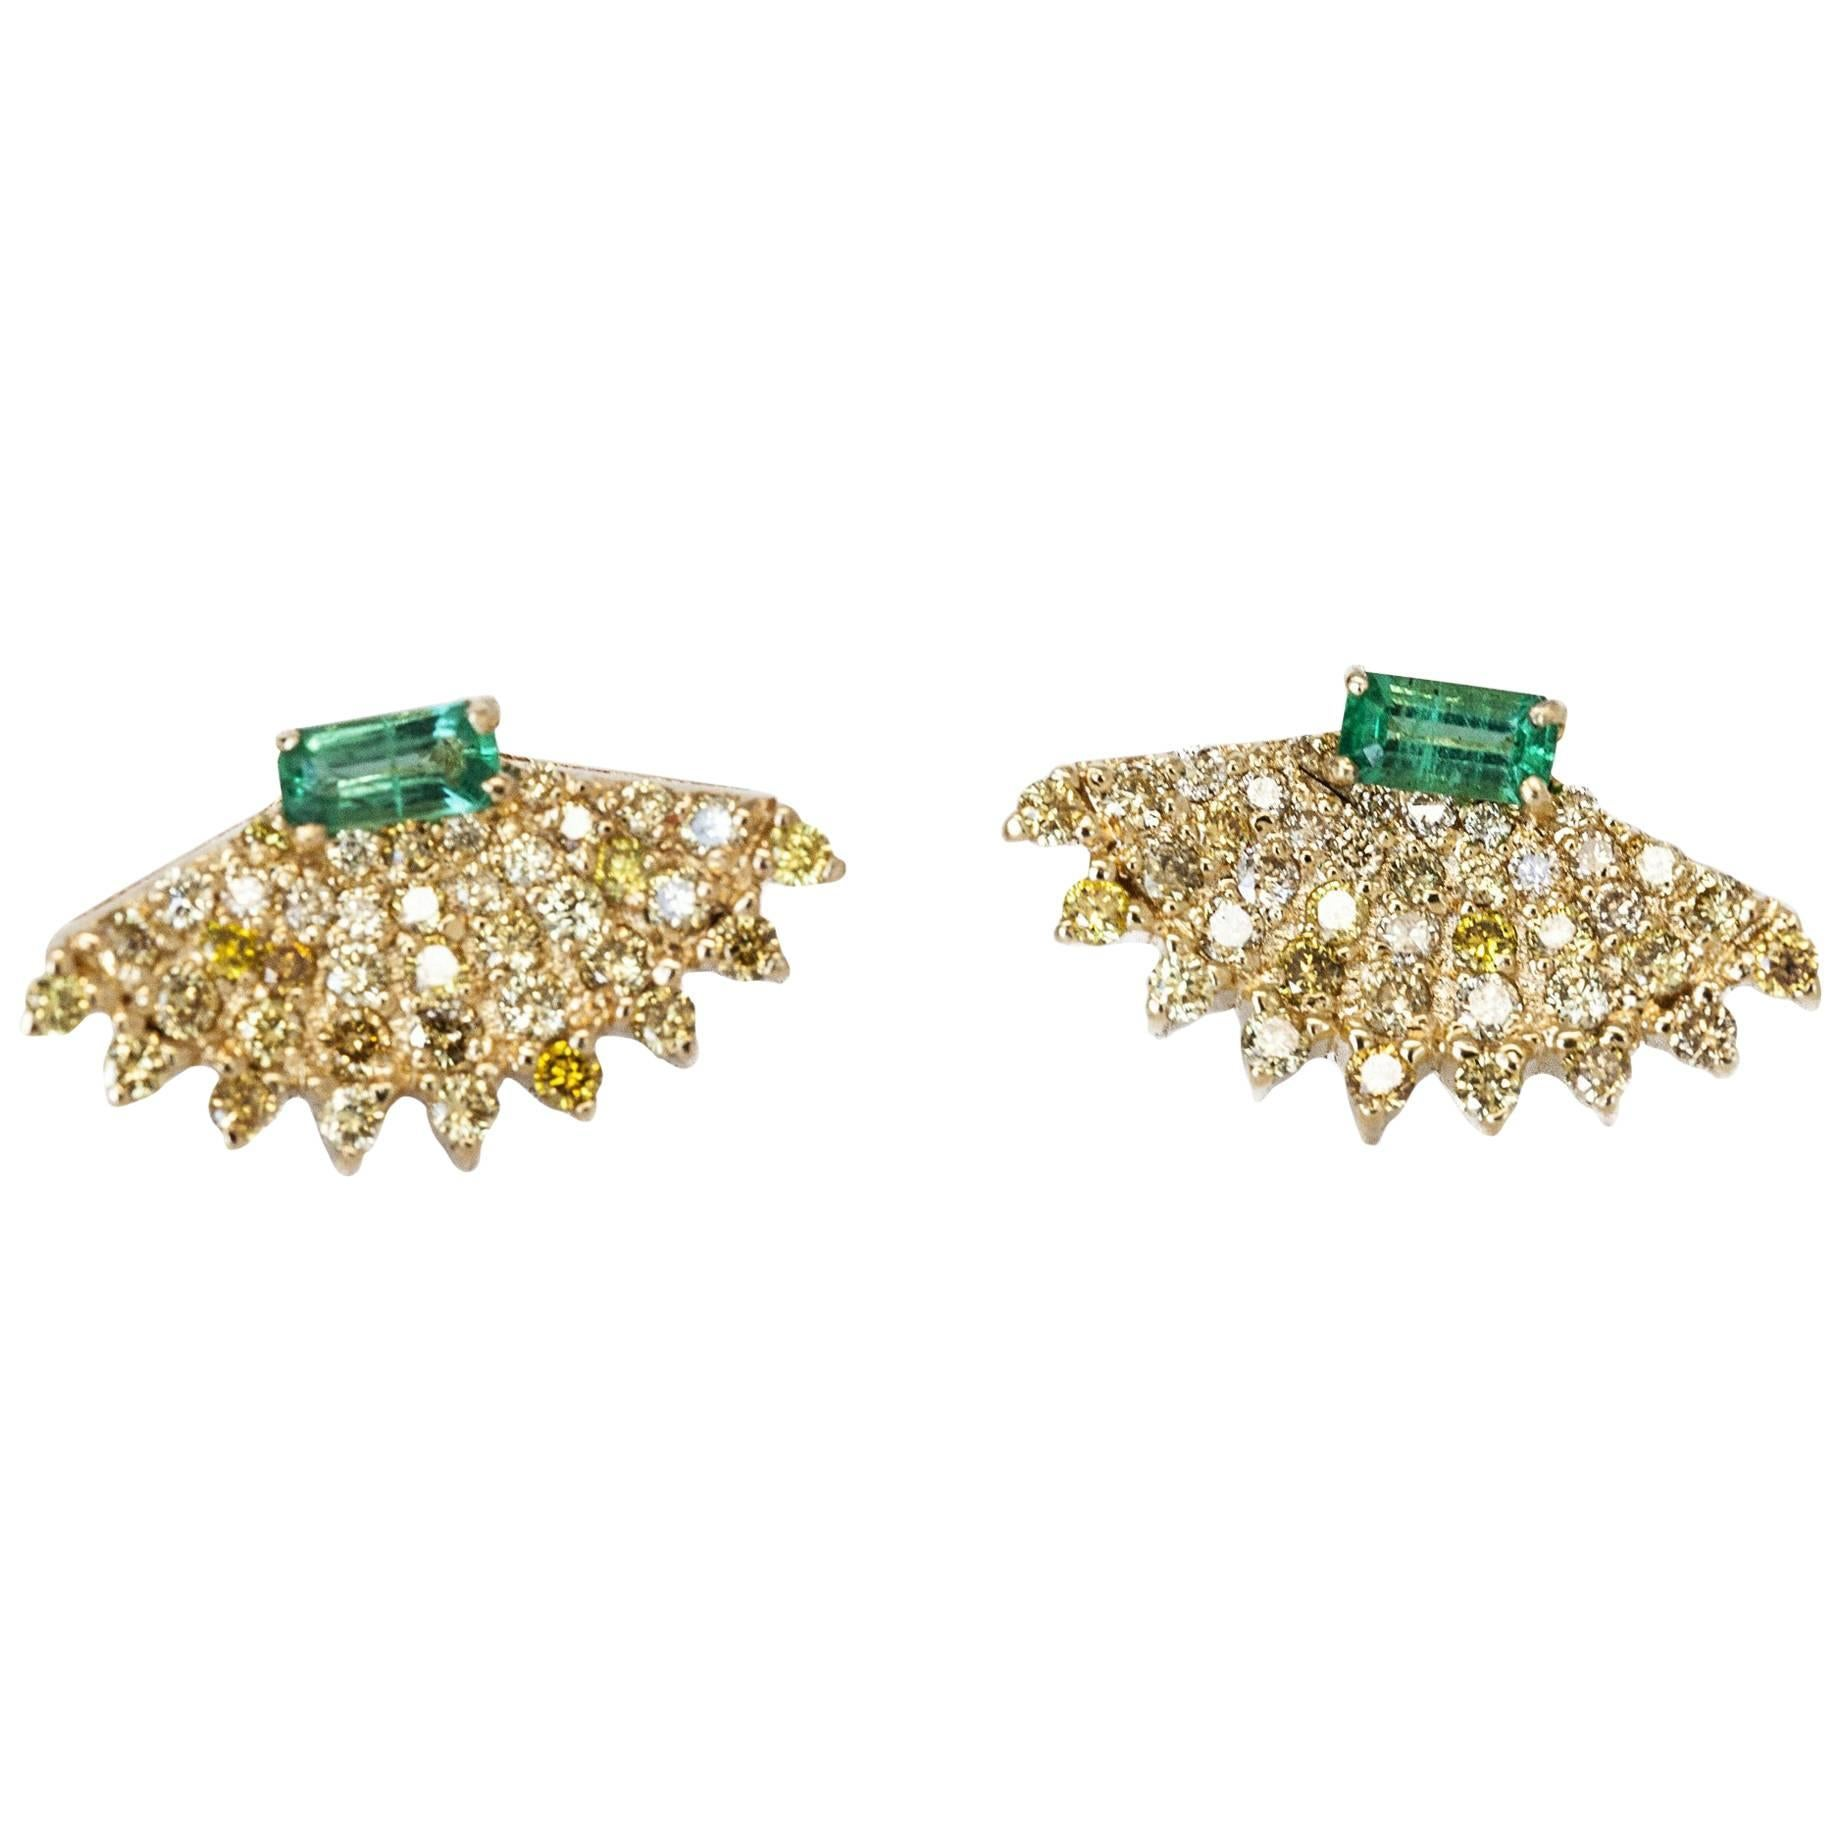 Rounded Fan Earrings with Yellow Diamonds and Emeralds